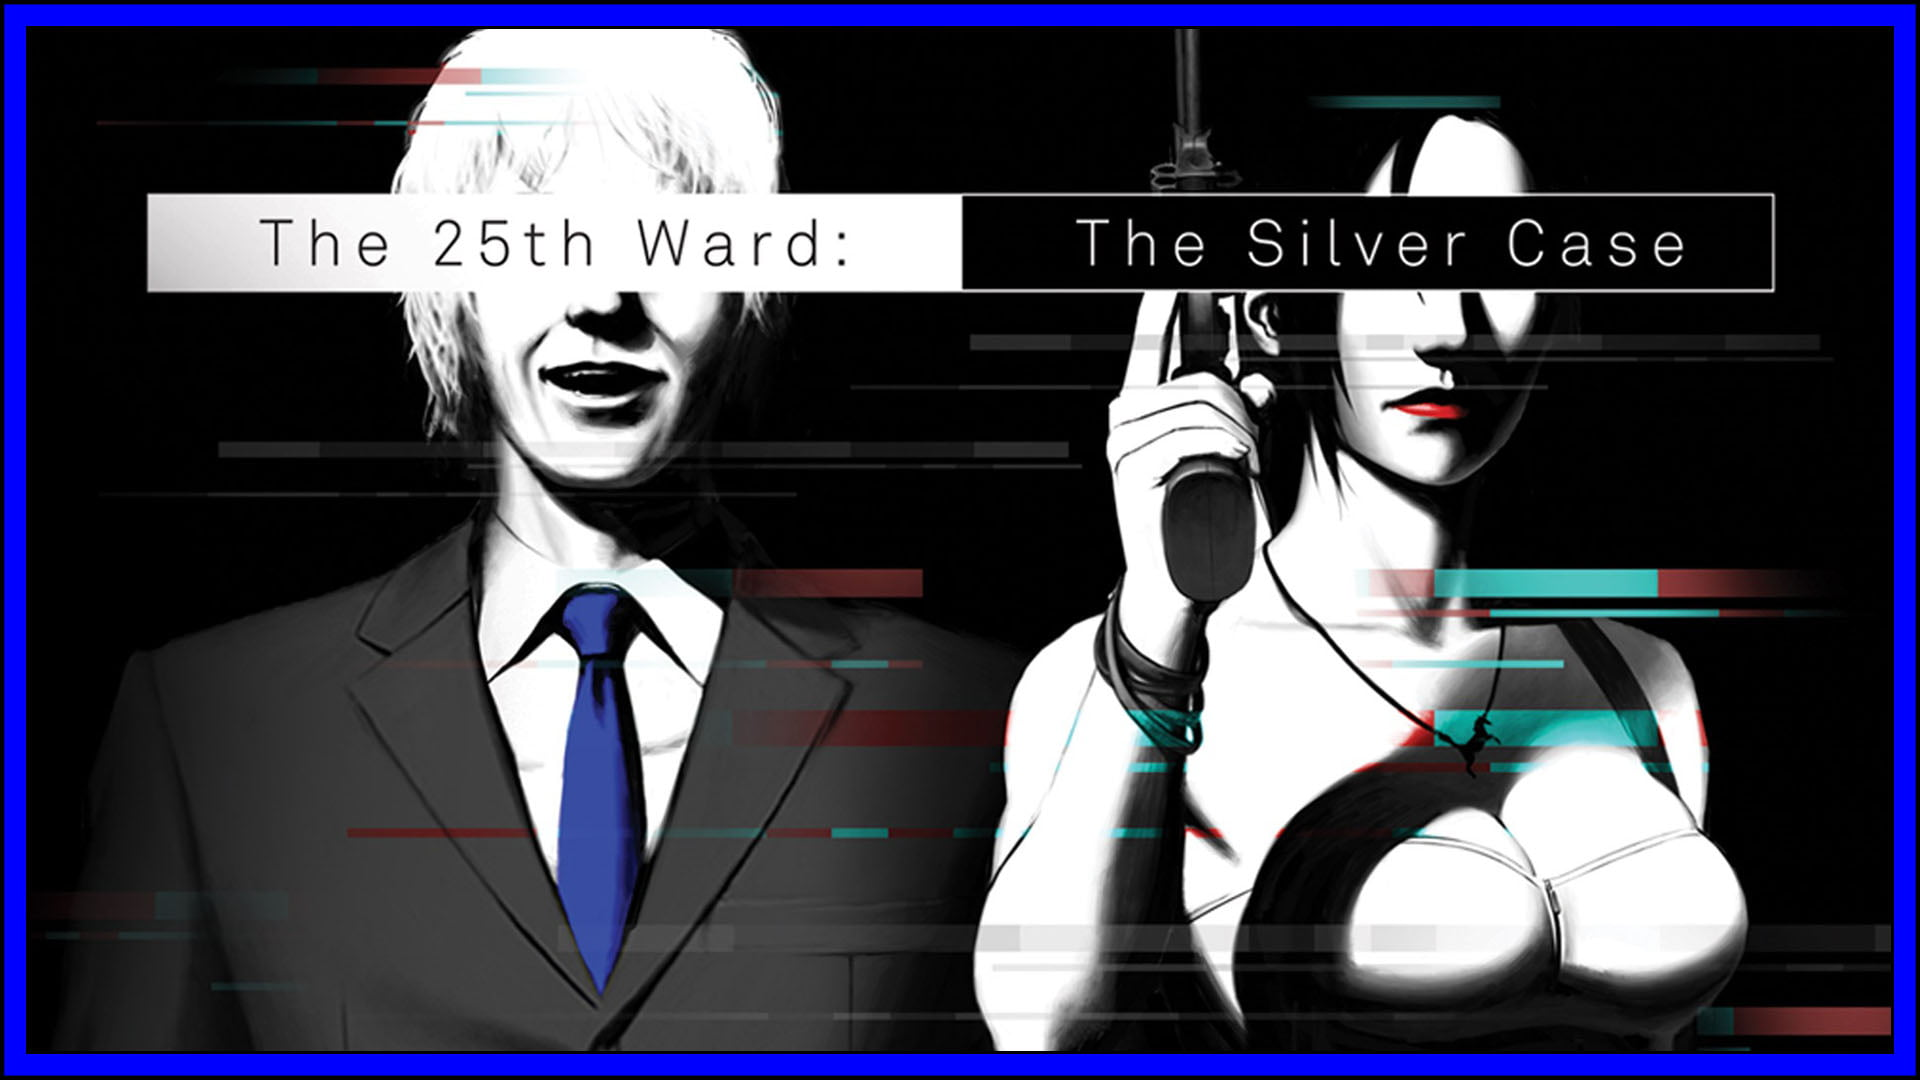 The 25th Ward Fi3